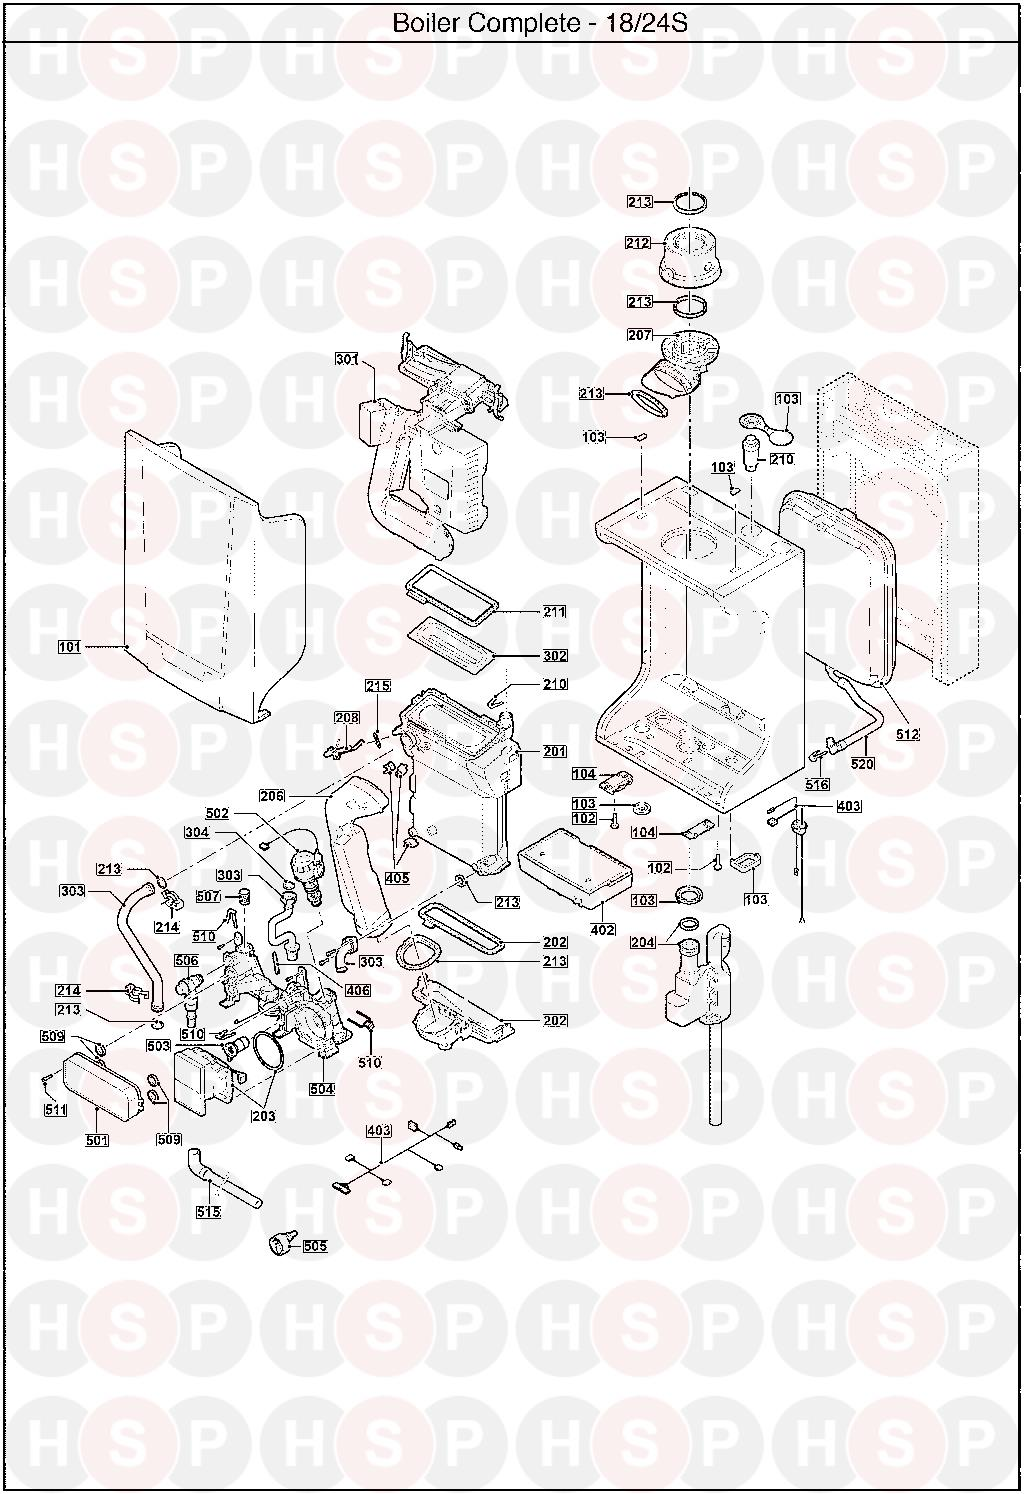 EXPLODED VIEW diagram for Baxi 18 SYSTEM ERP